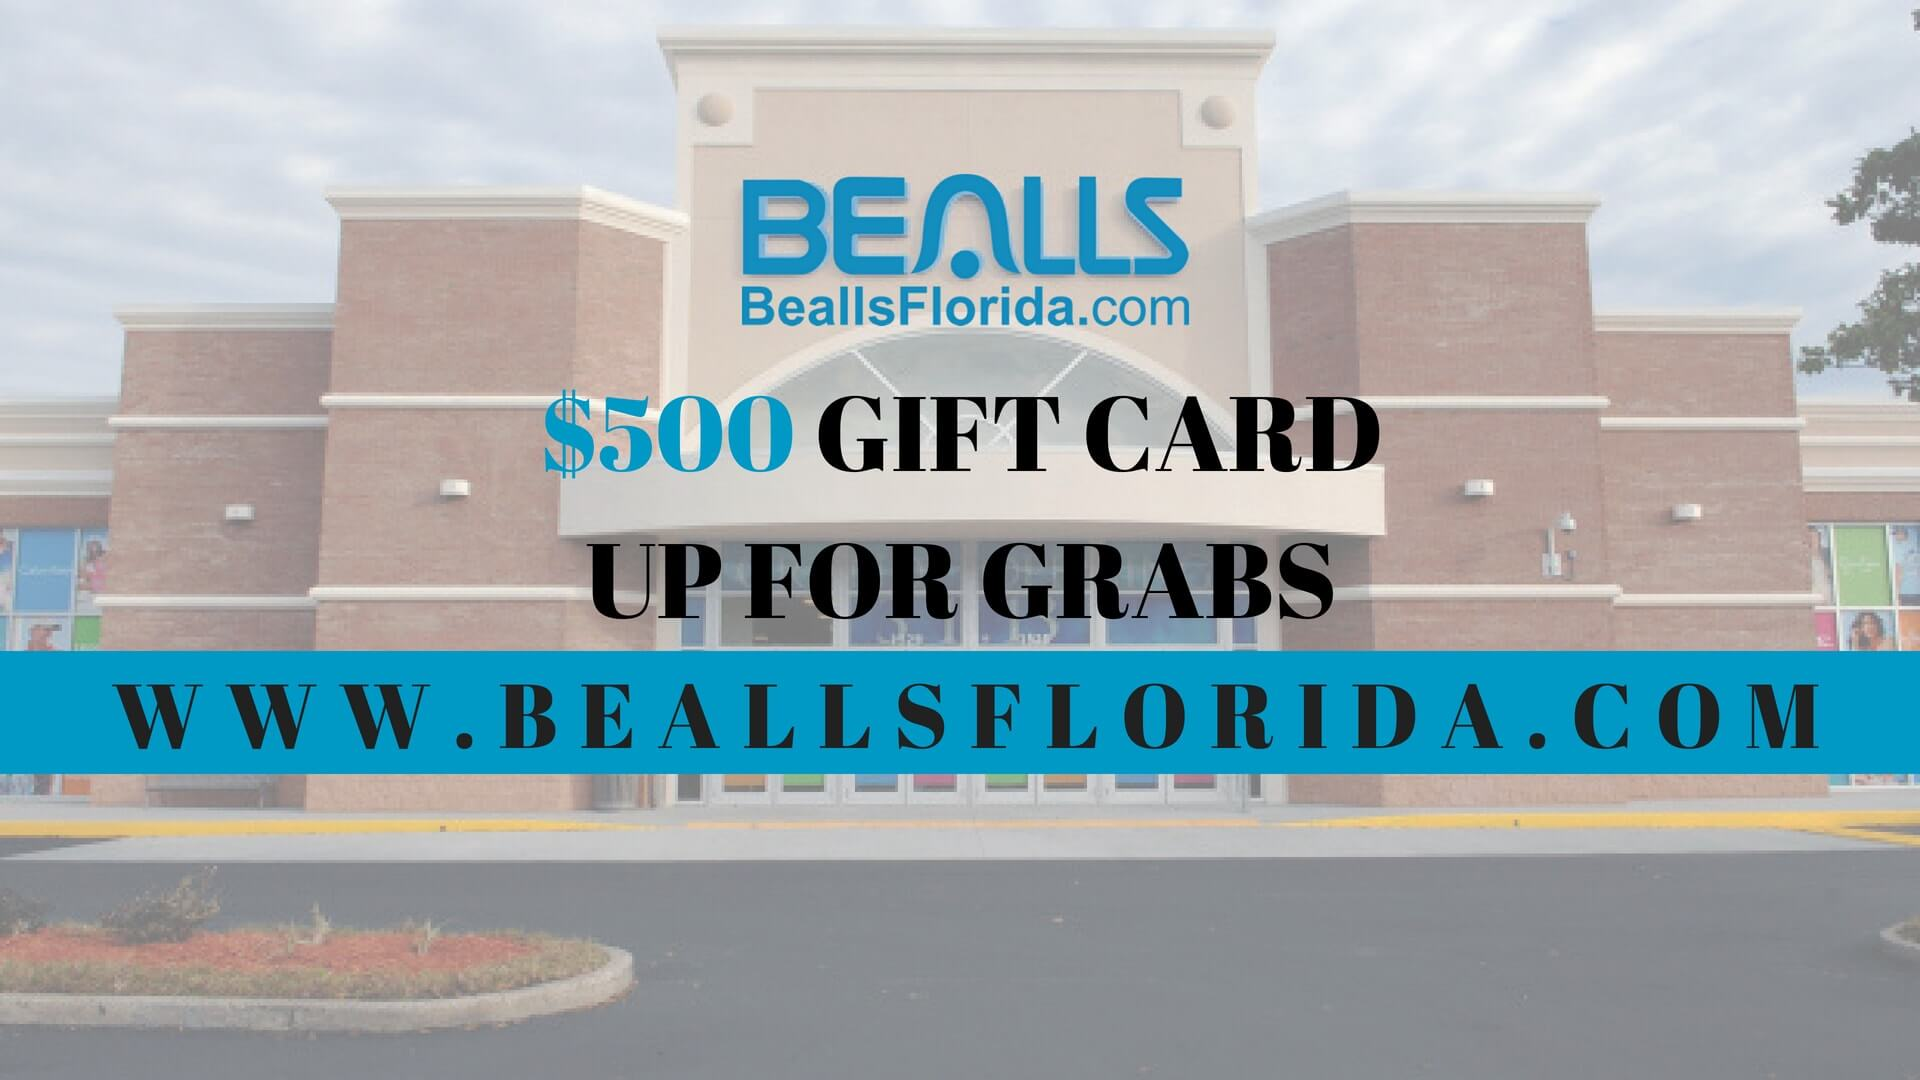 Bealls Feedback Survey | WIN $500 Gift Card by Entering the Survey